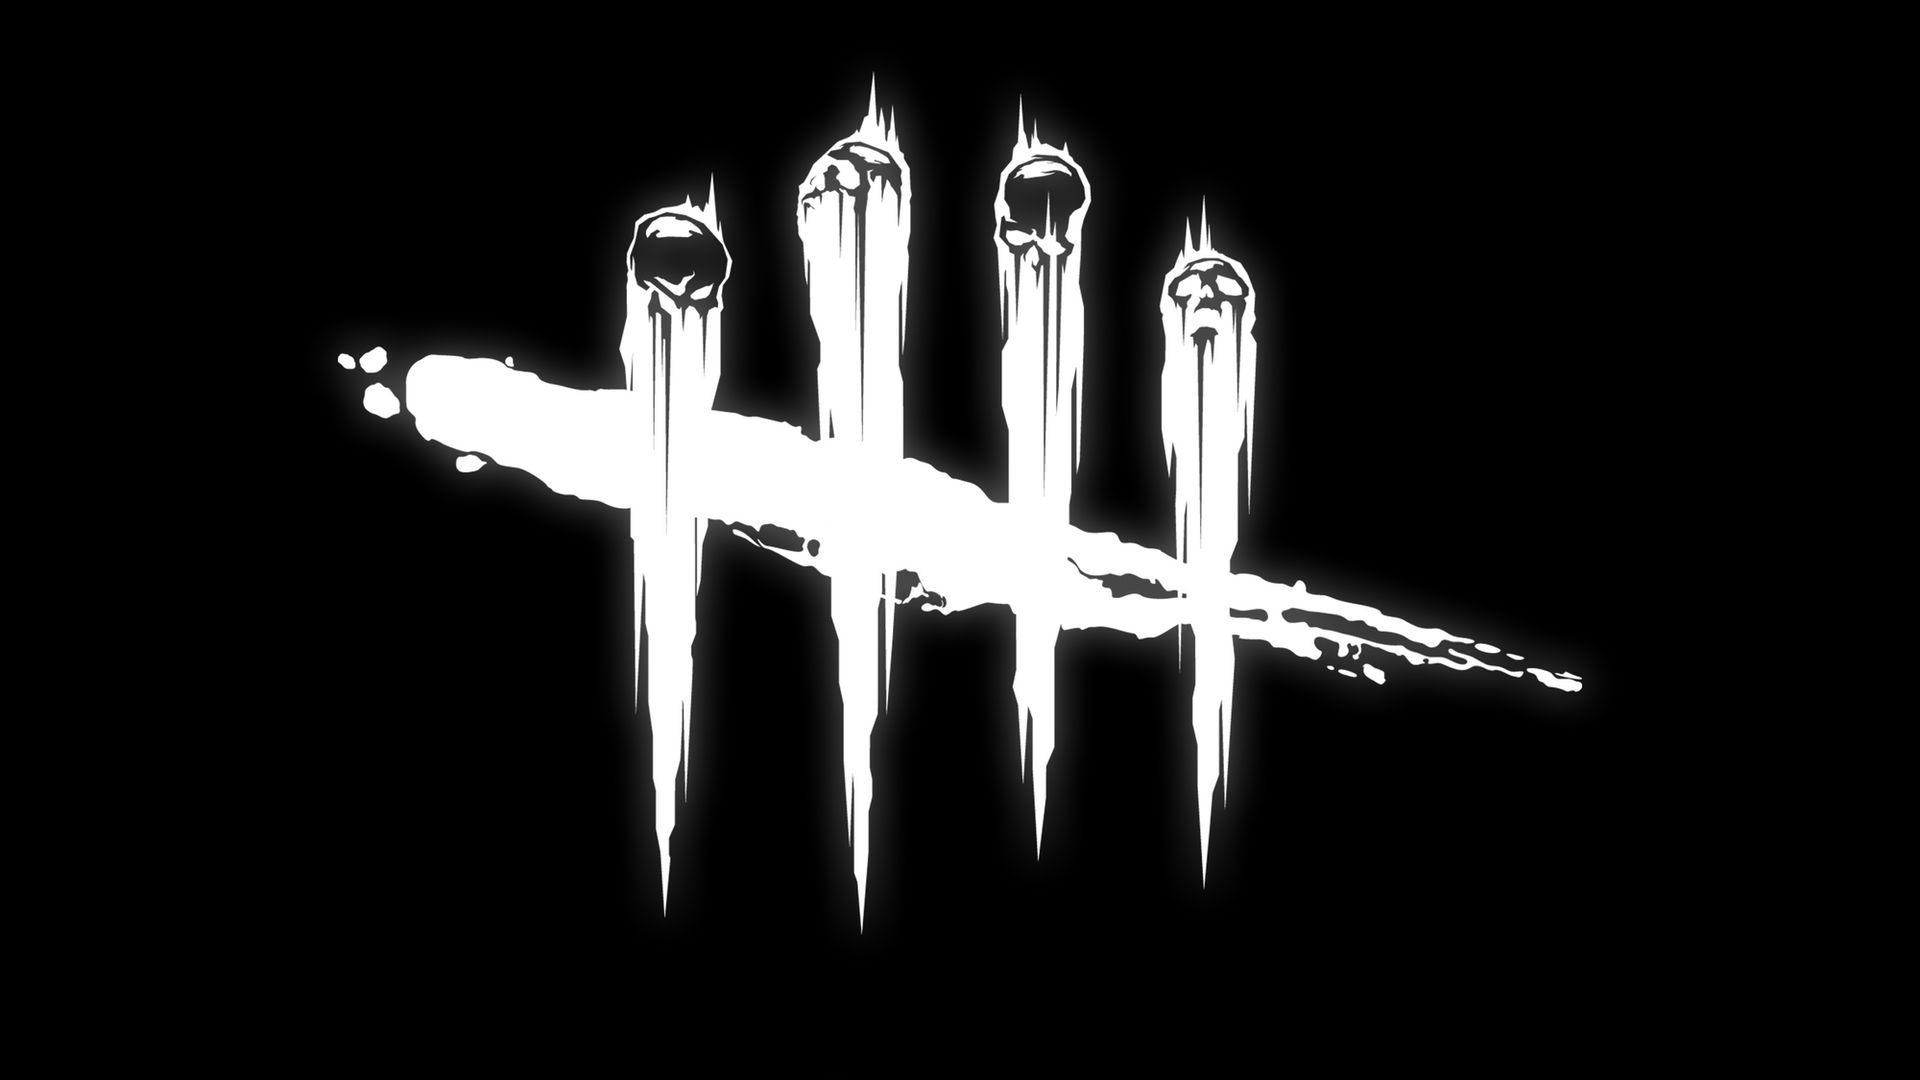 Dead By Daylight Logo By Elizflo On Deviantart This subreddit is dedicated for users to share their custom dead by daylight icons, as well as fan made perks and chapters!. dead by daylight logo by elizflo on